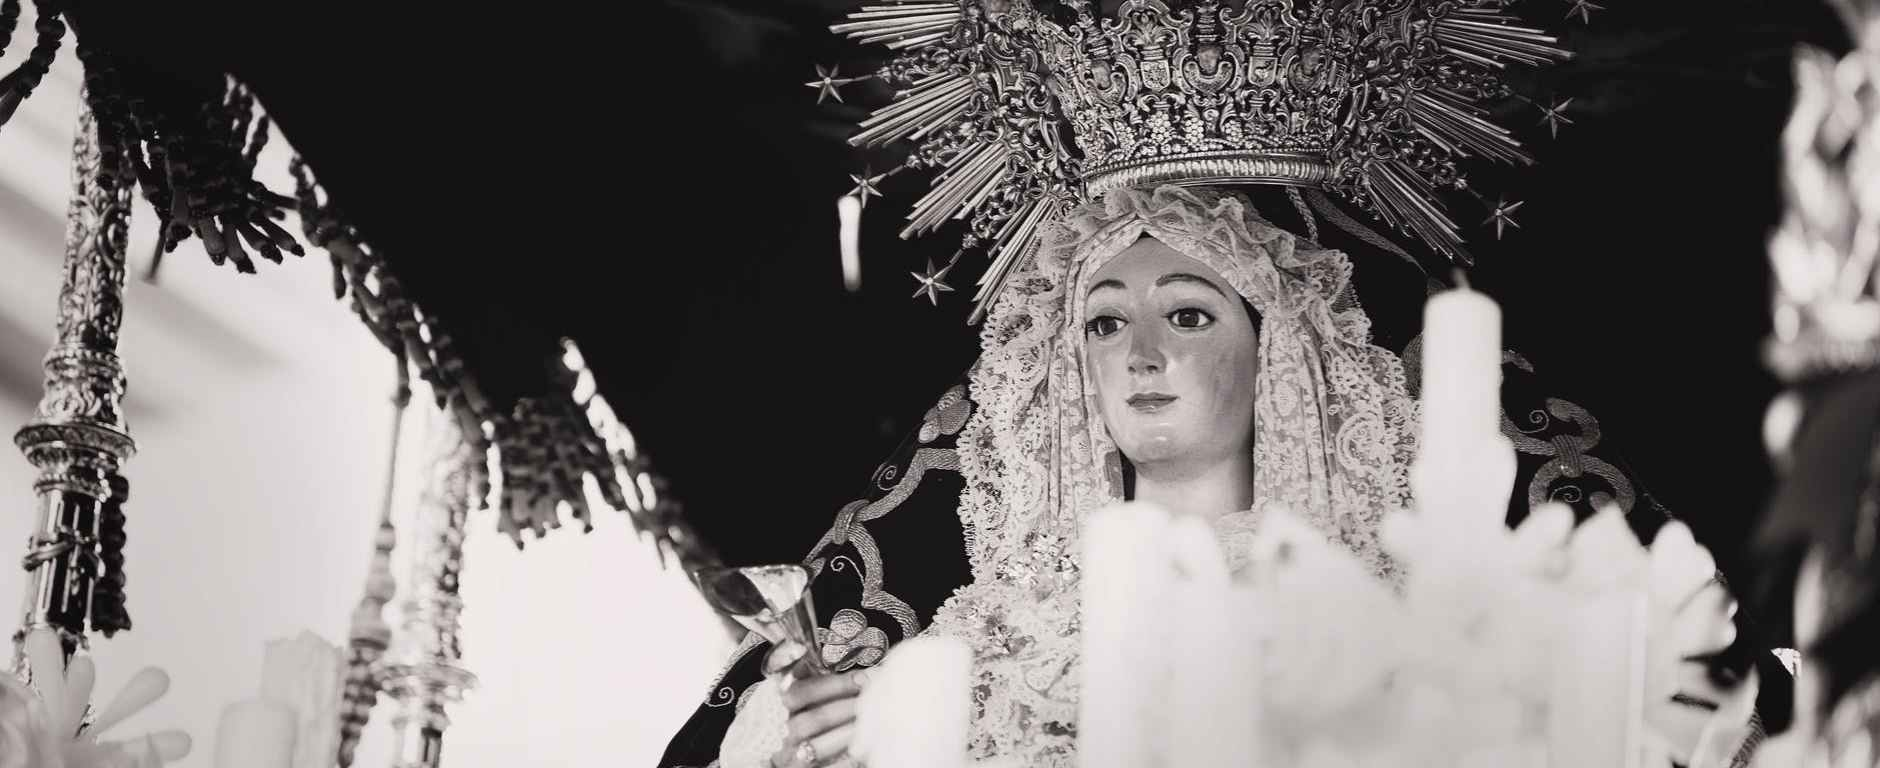 grayscale photo of religious statue